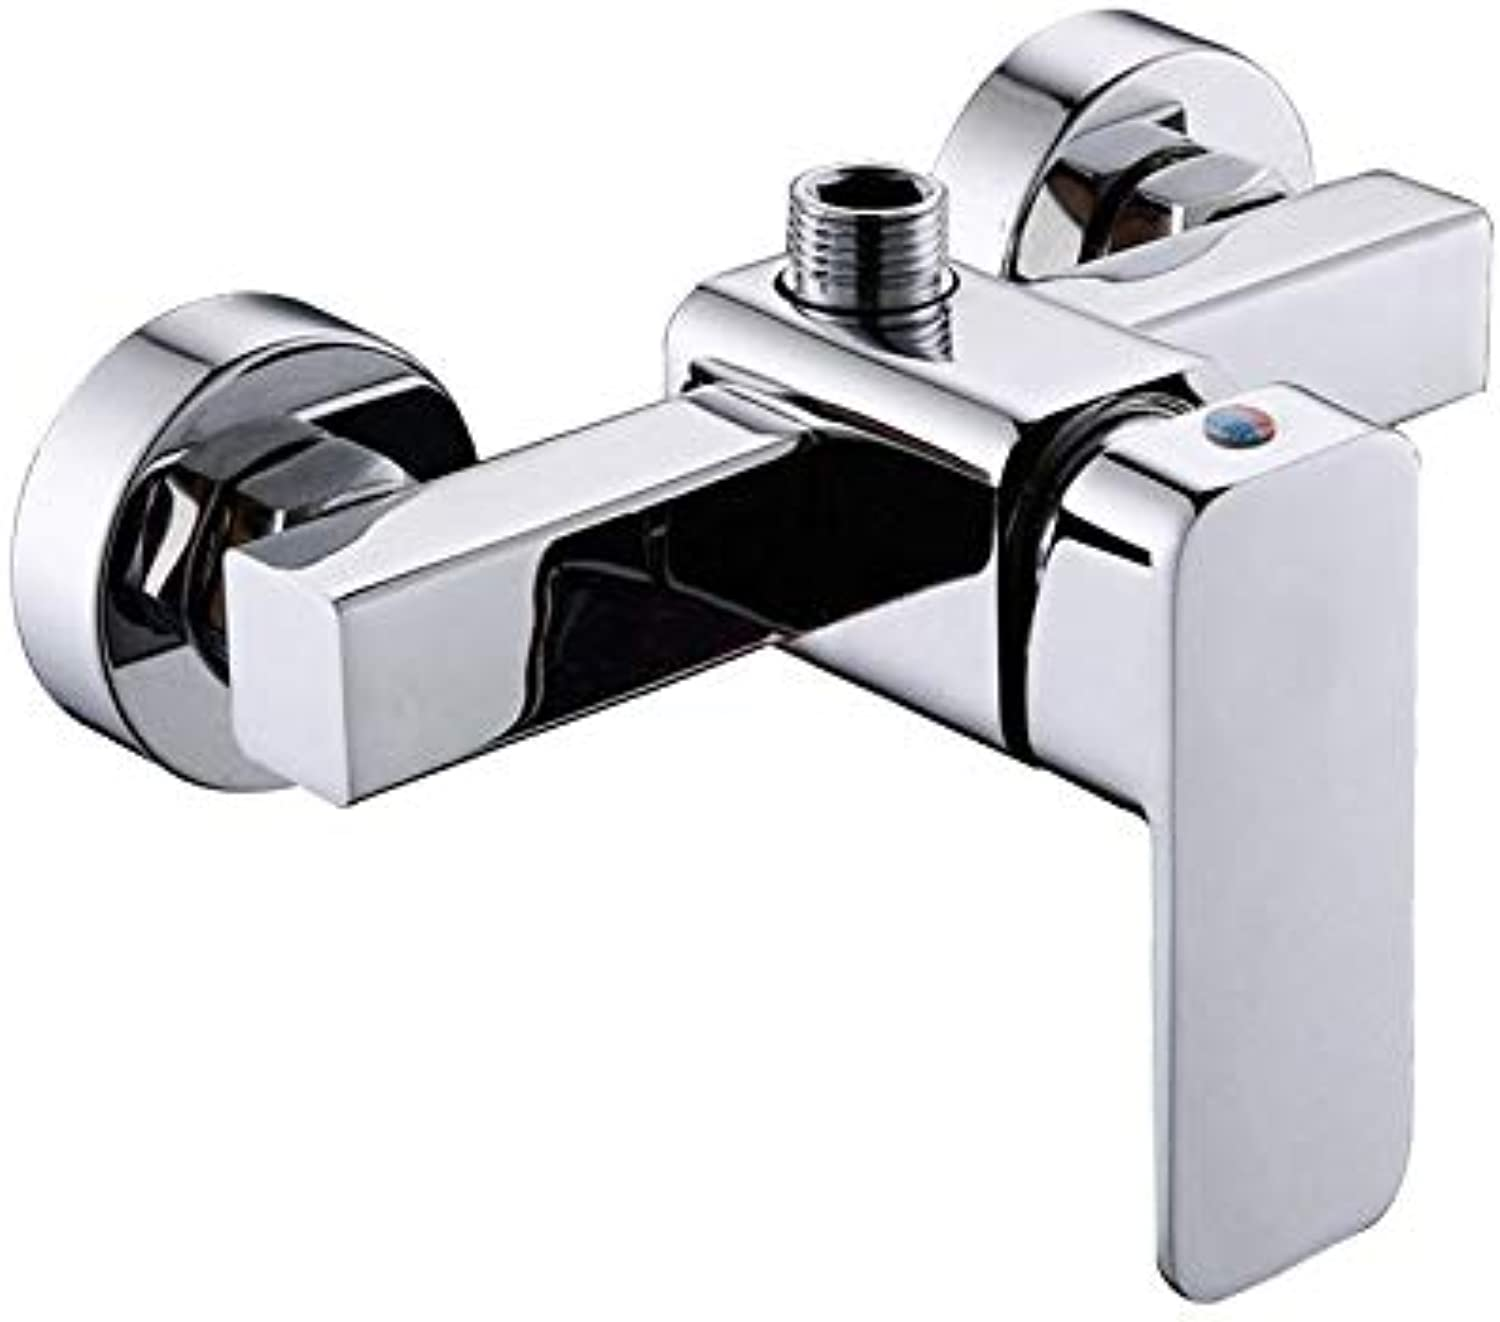 redOOY Taps ?Hot And Cold Water Faucet Mixing Valve Zinc Alloy Bathtub Faucet Square Shower Faucet